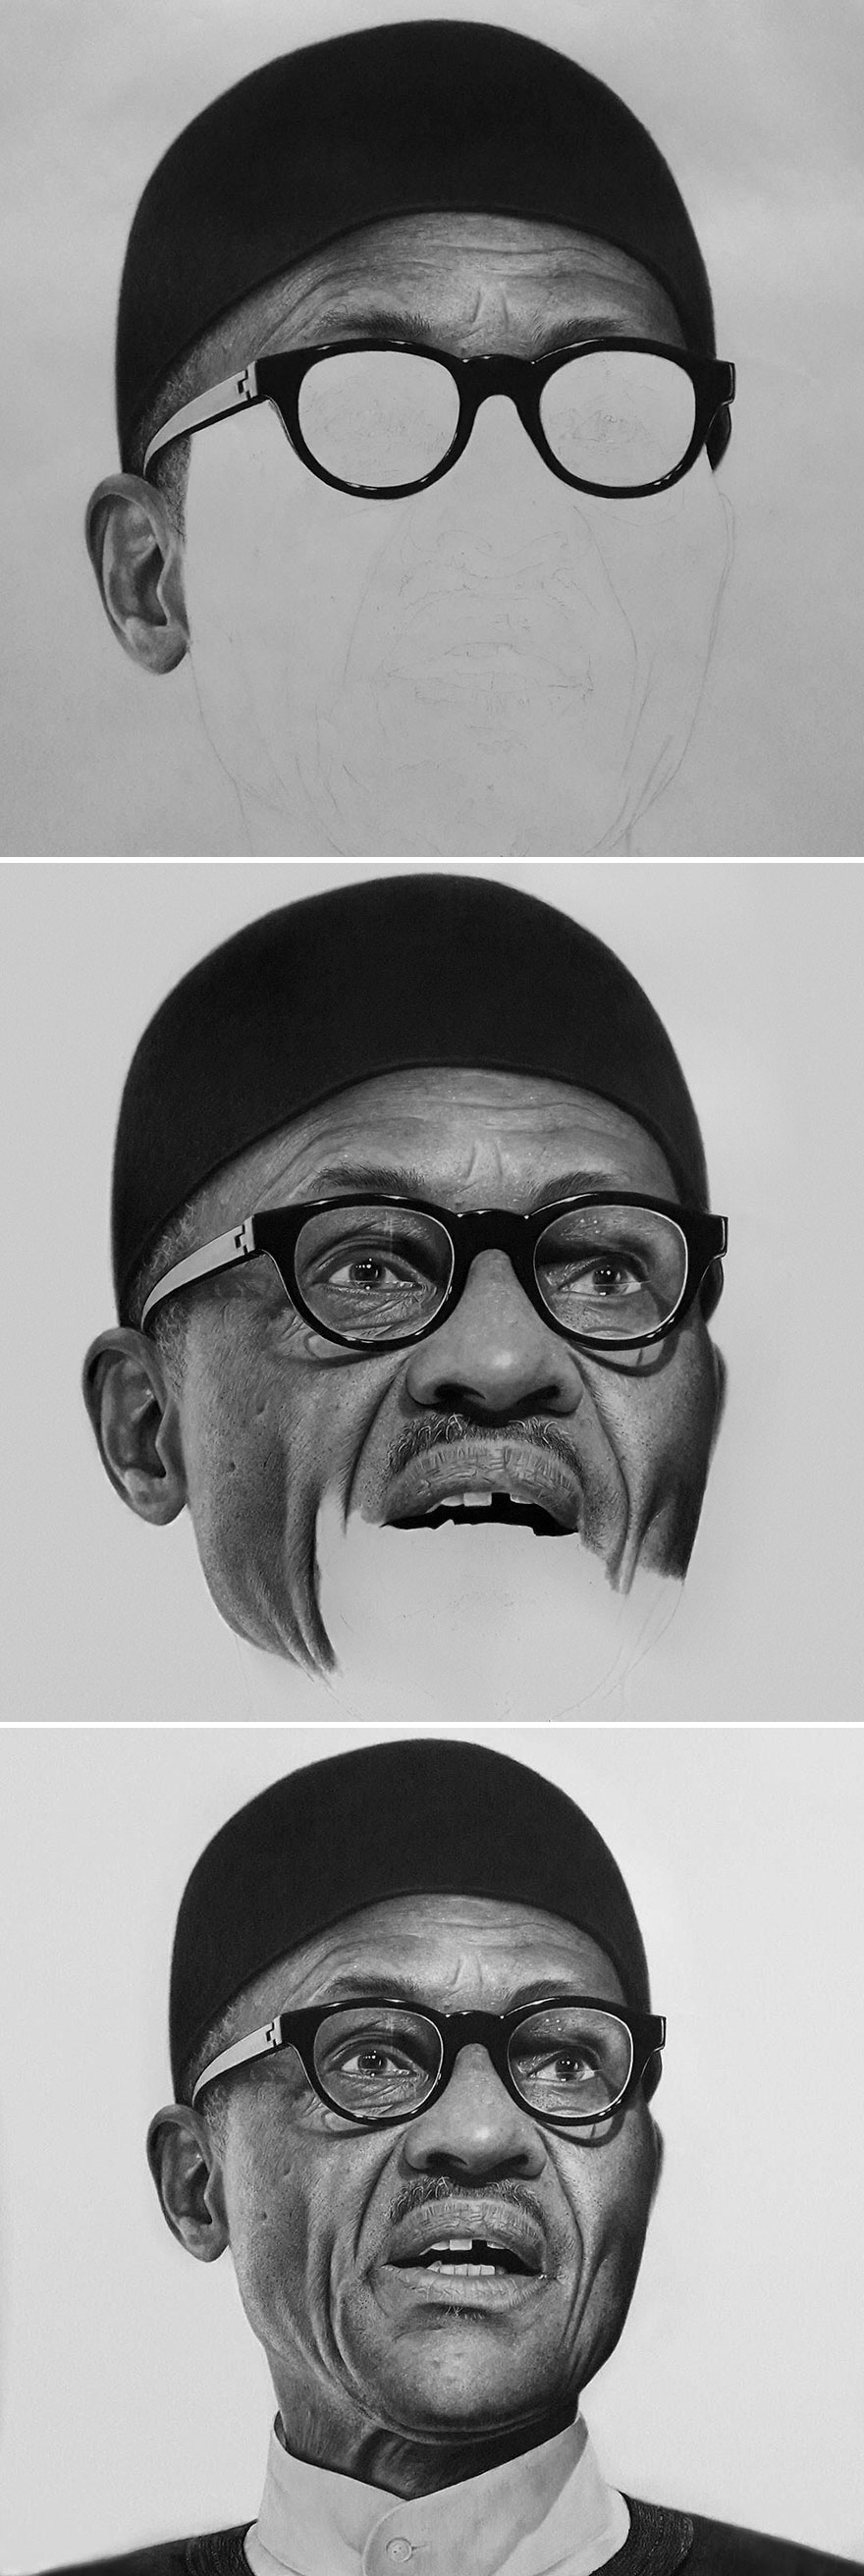 hyperrealism-pencil-portraits-arinze-stanley-2-58d28c013a226__880-2